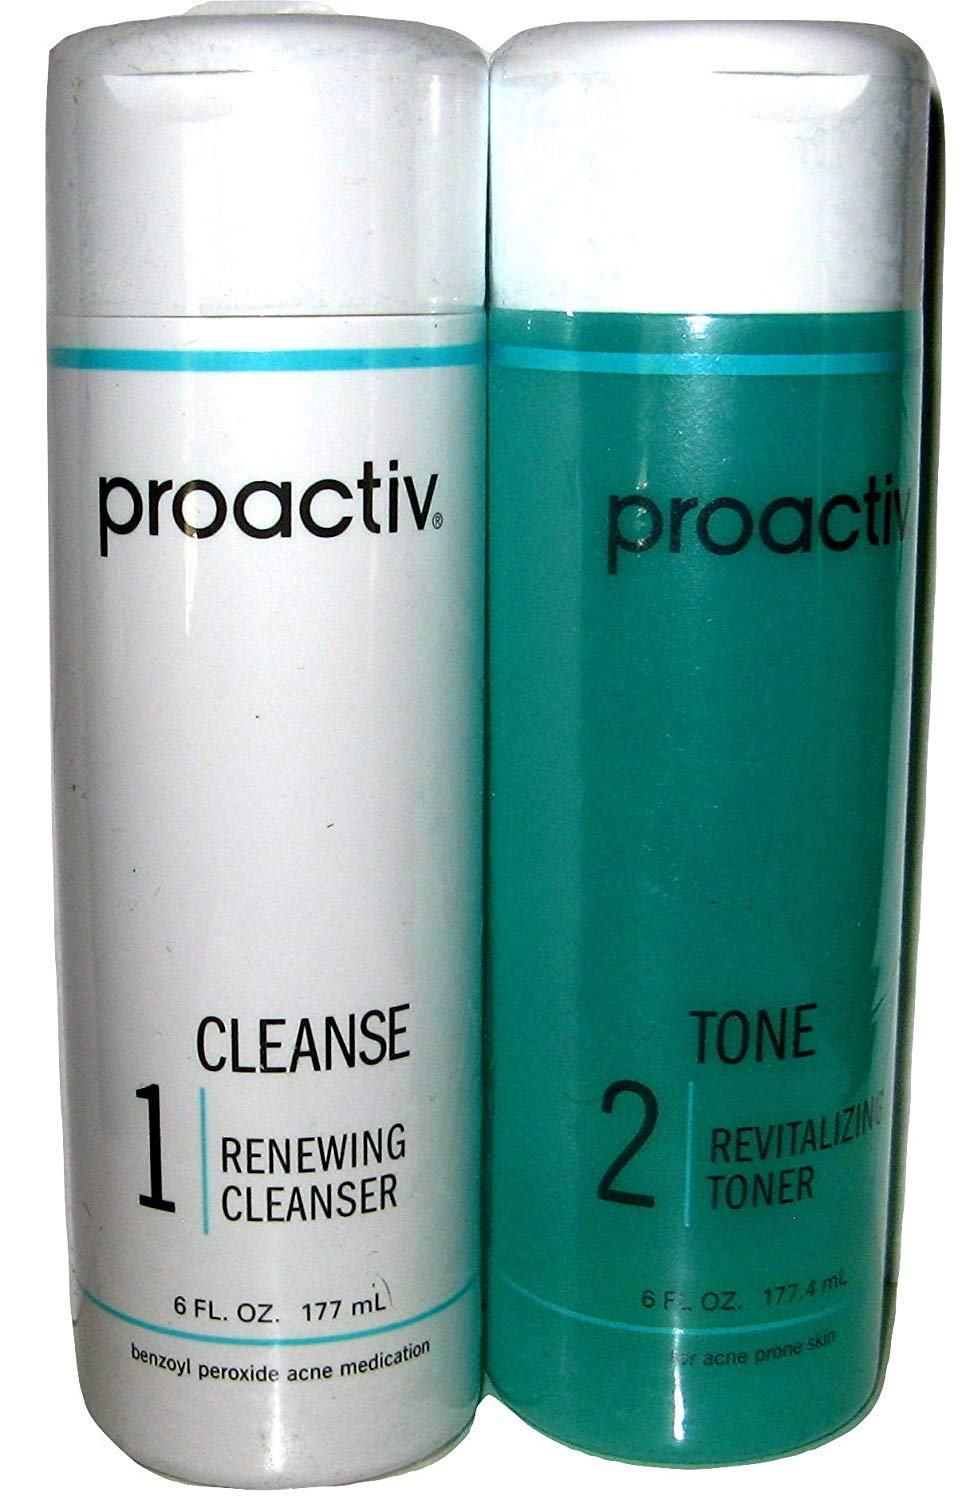 2PC 90 day SET Proactive CLEANSE + TONE ( Renewing Cleanser + Revitalizing Toner ) - 6fl oz / 177mL by ProActive